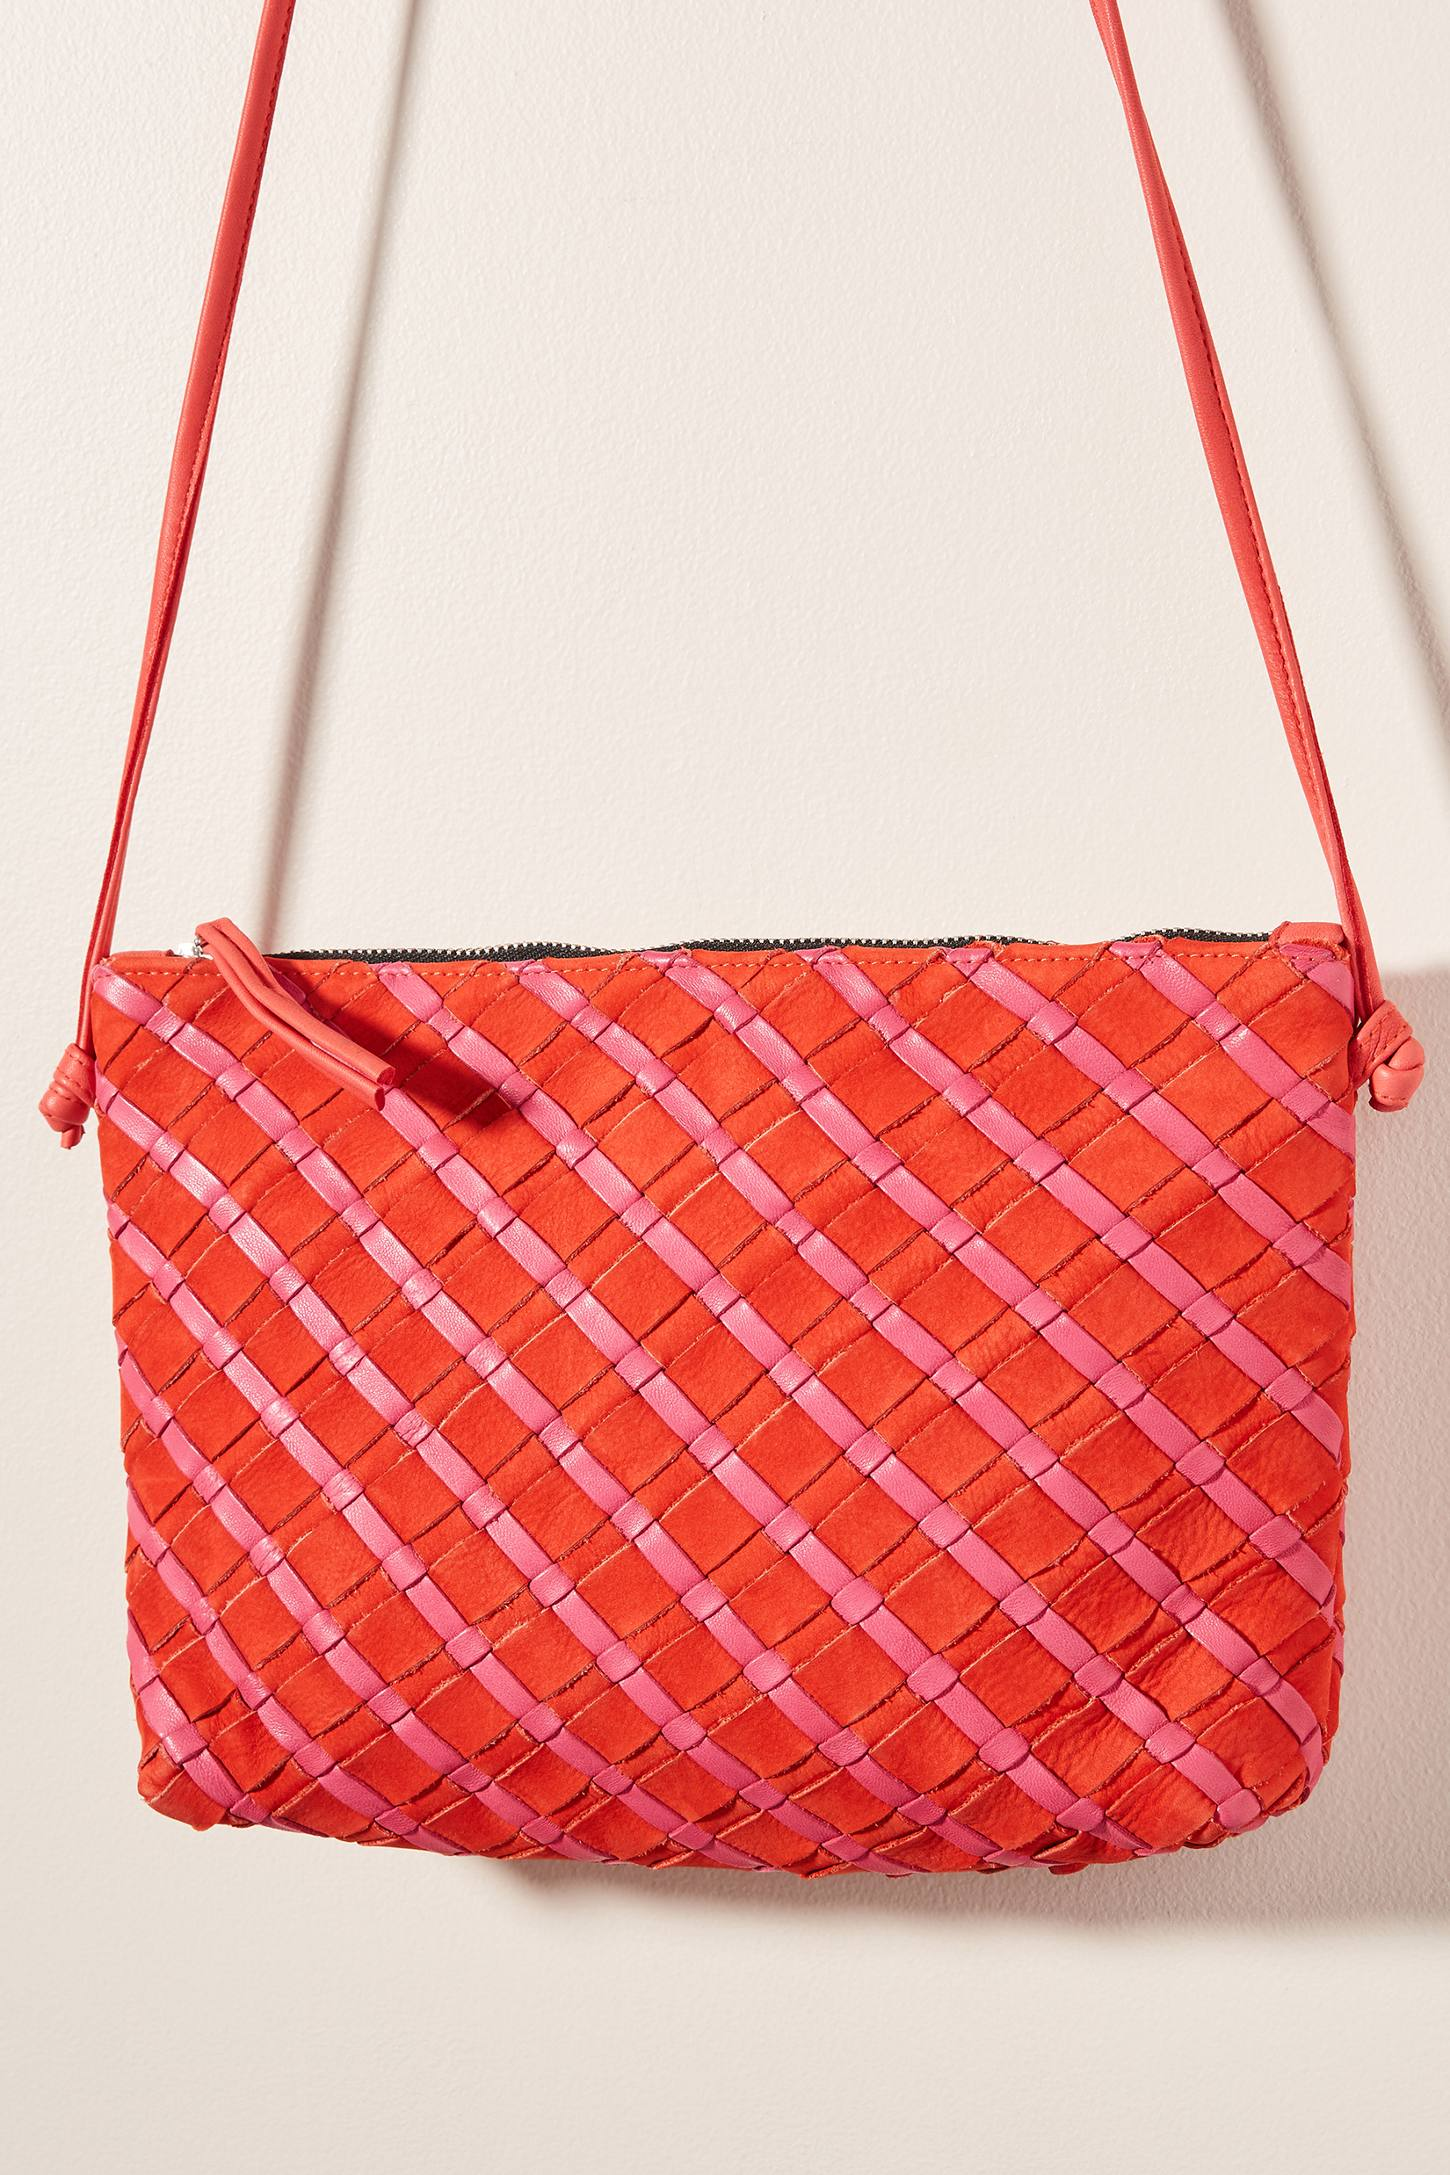 Woven Leather Crossbody Bag in Pink/Red Mix